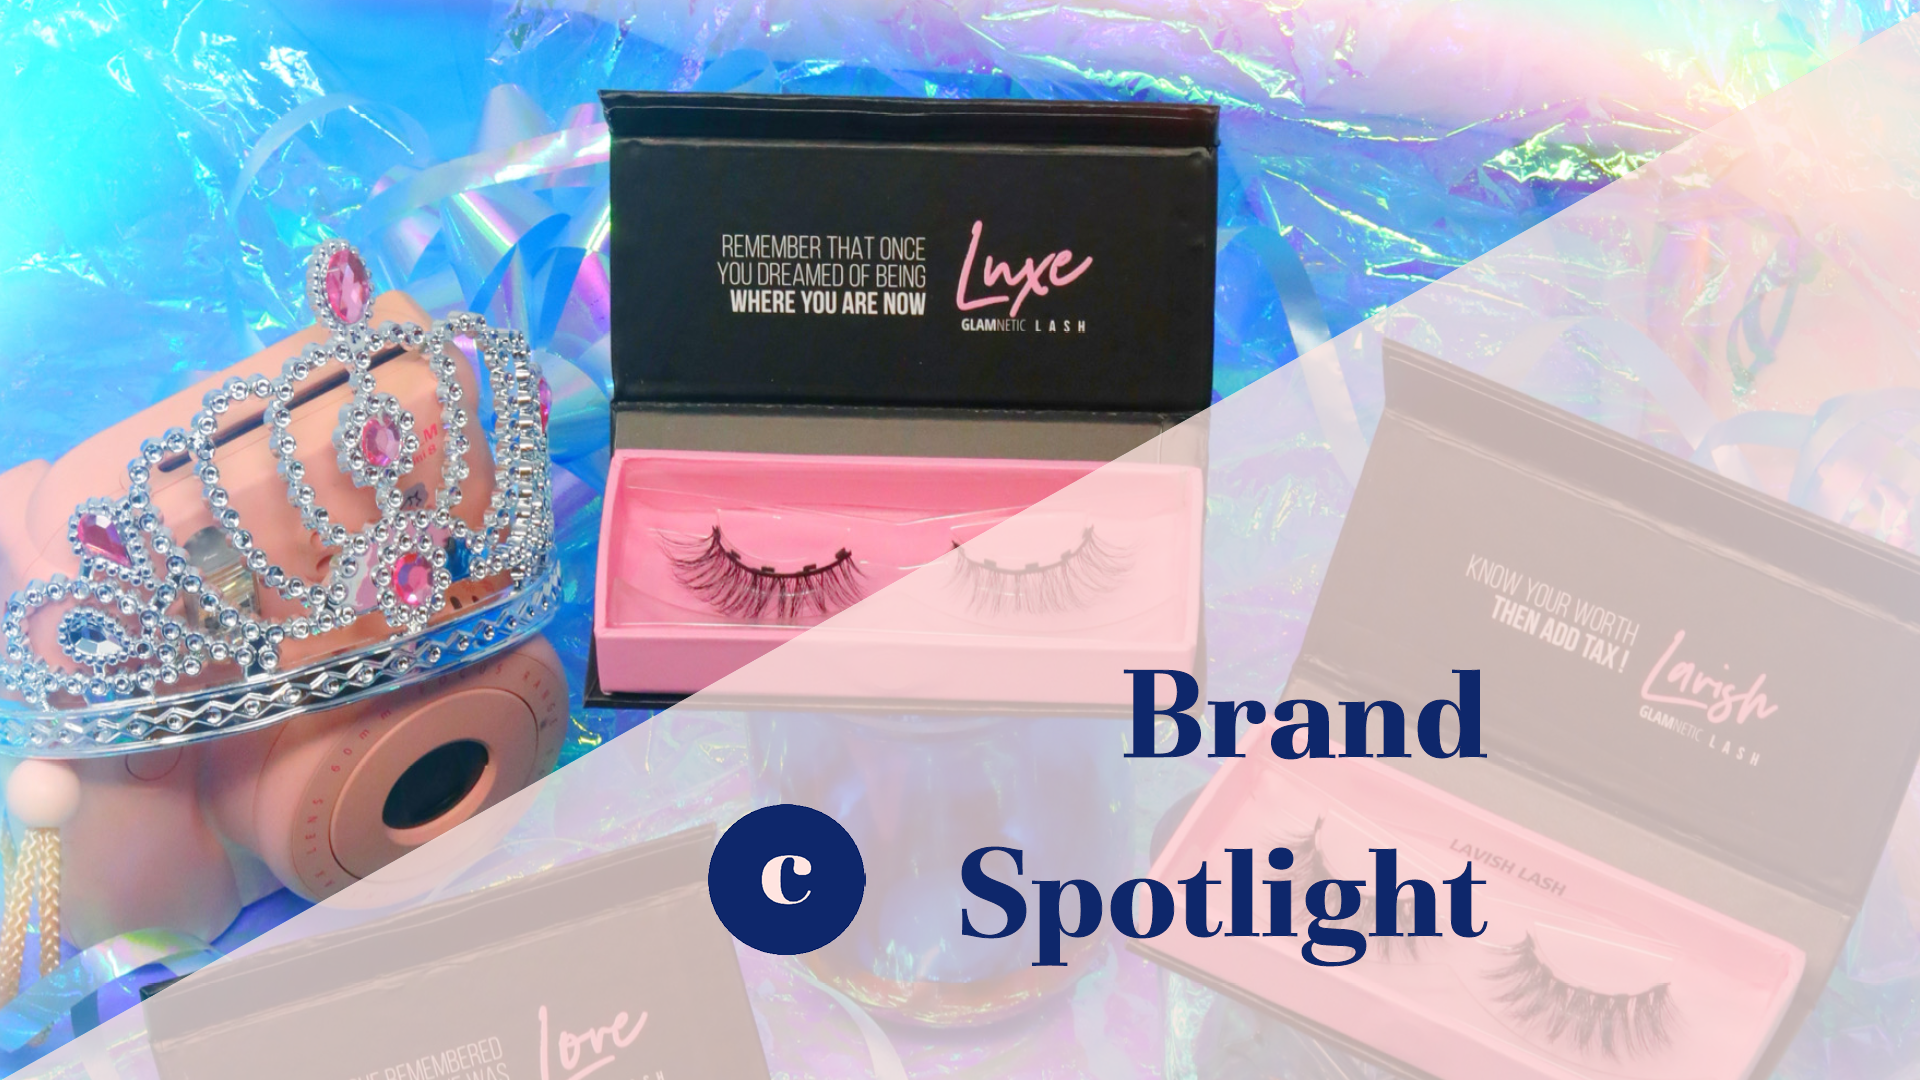 Brand Spotlight. Glamnetic.